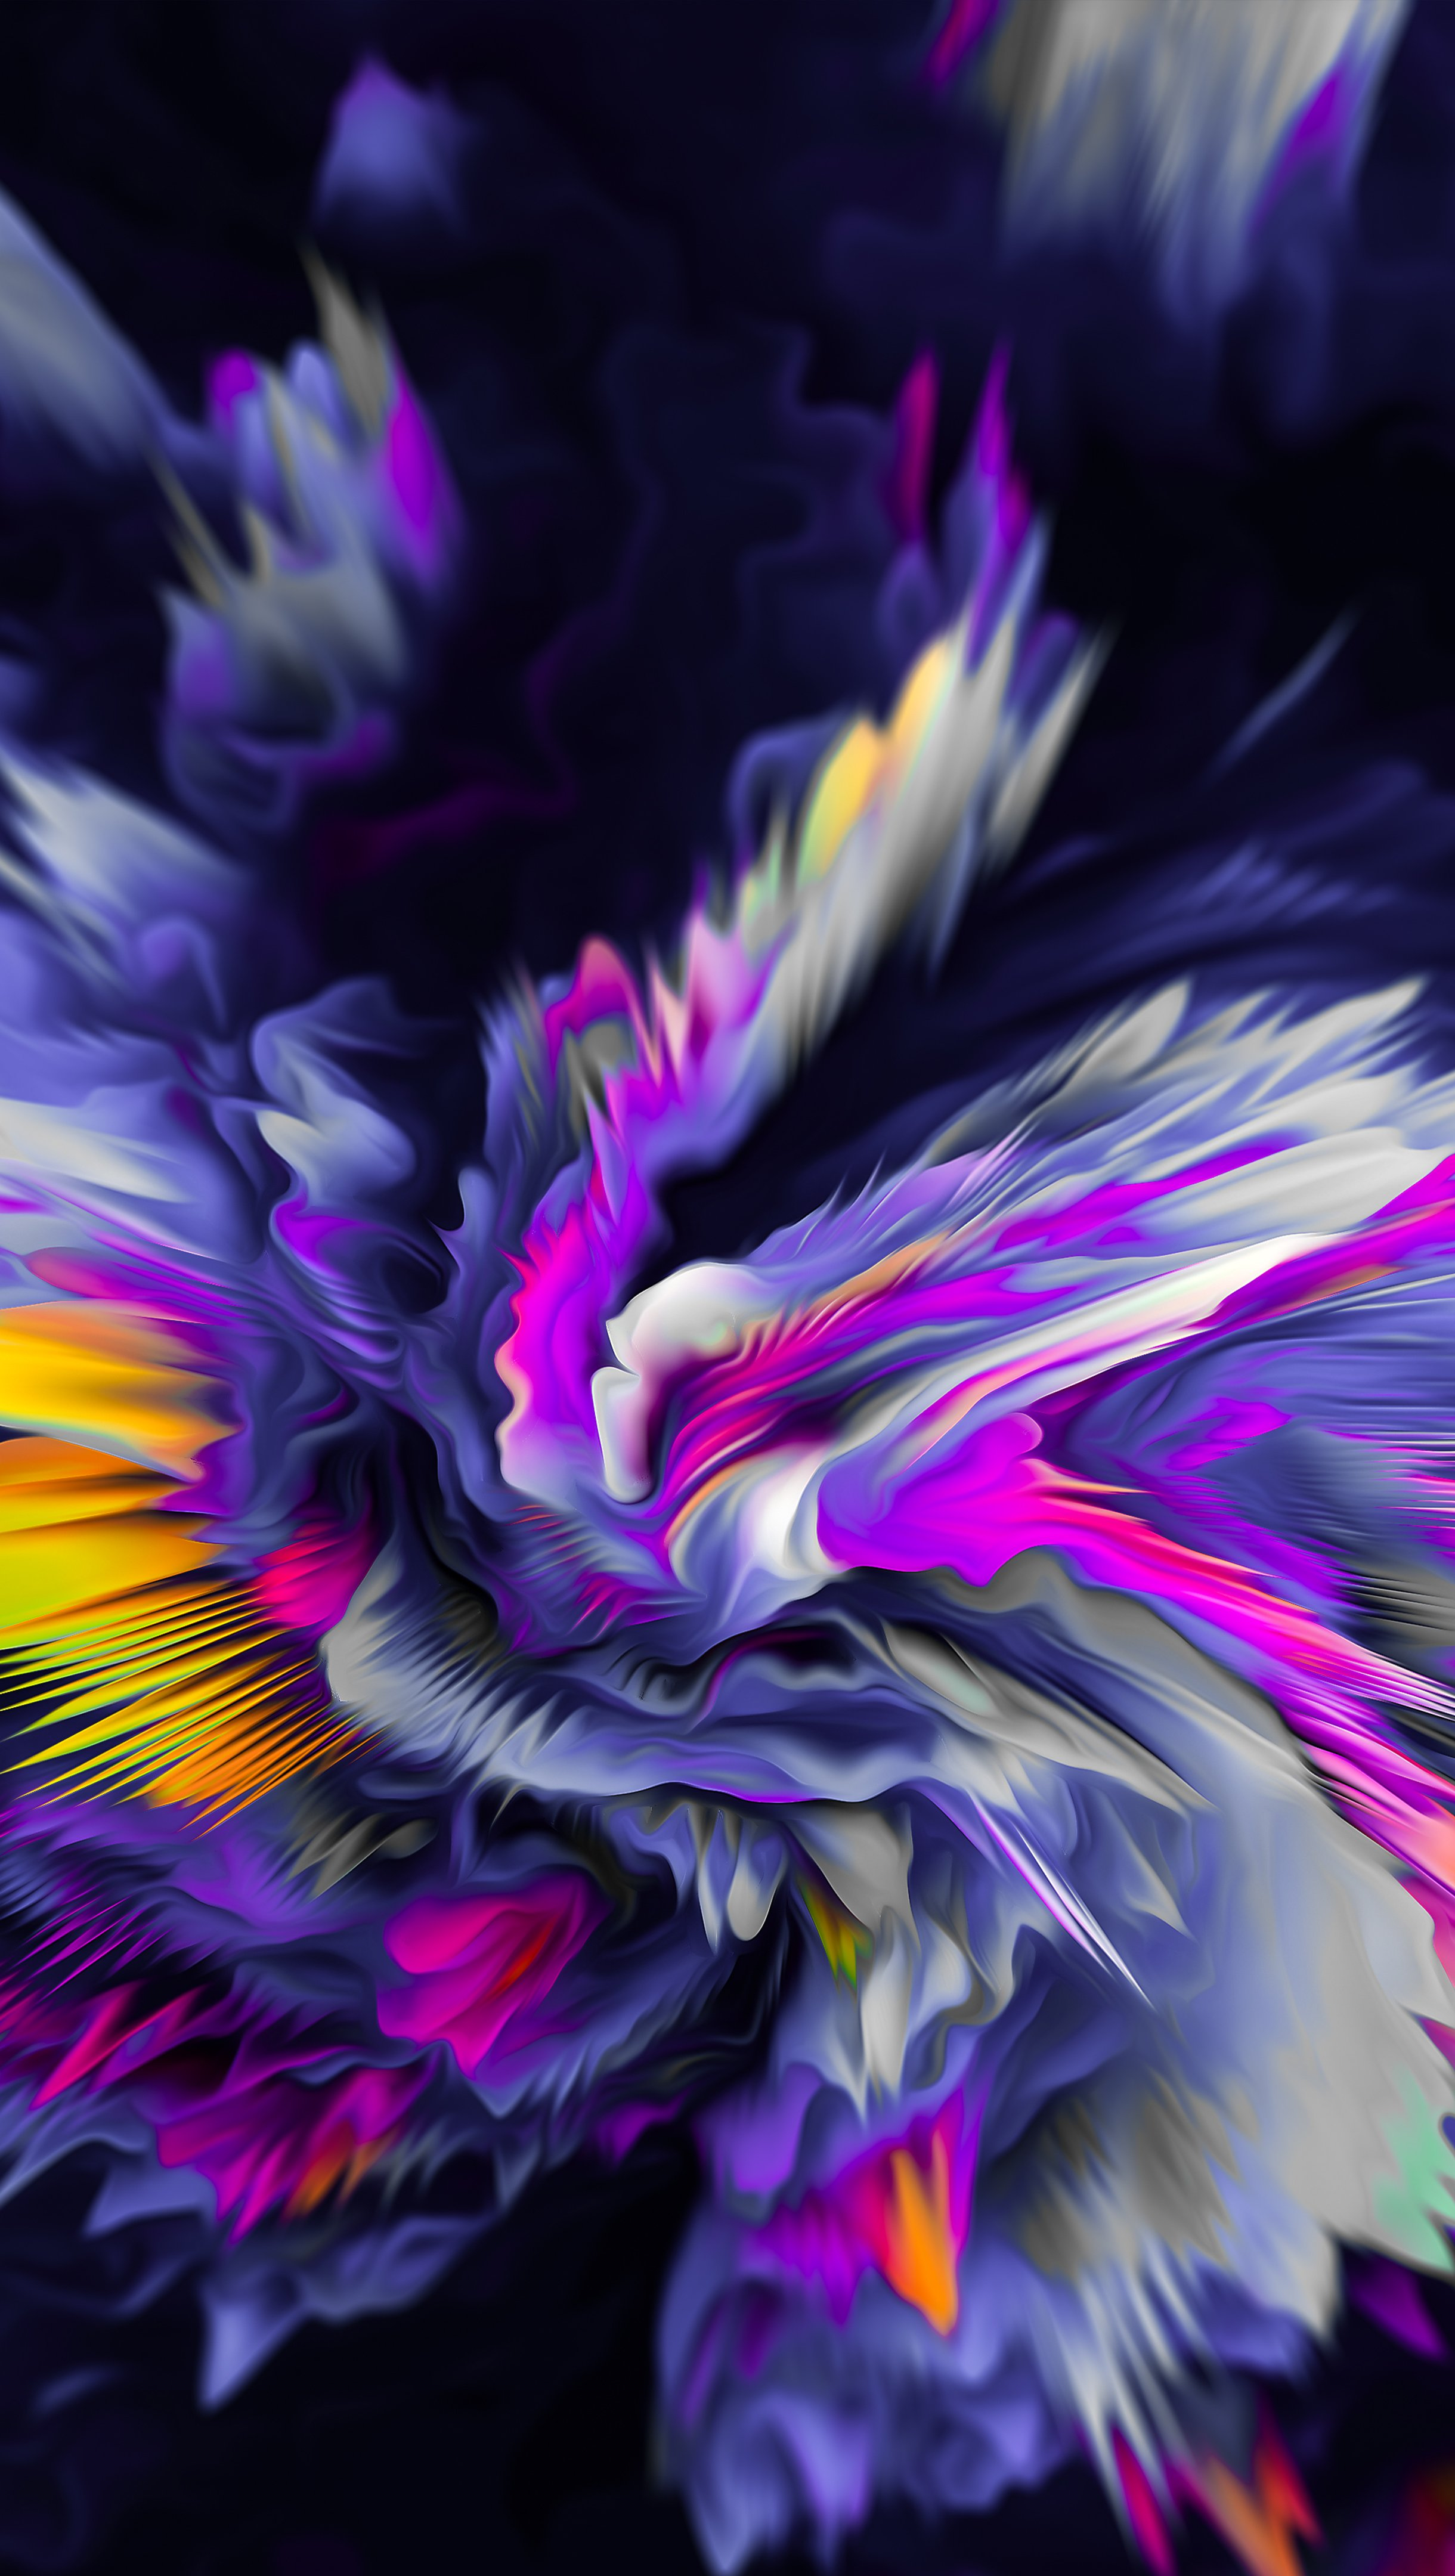 Wallpaper Exploding Flower Abstract Vertical